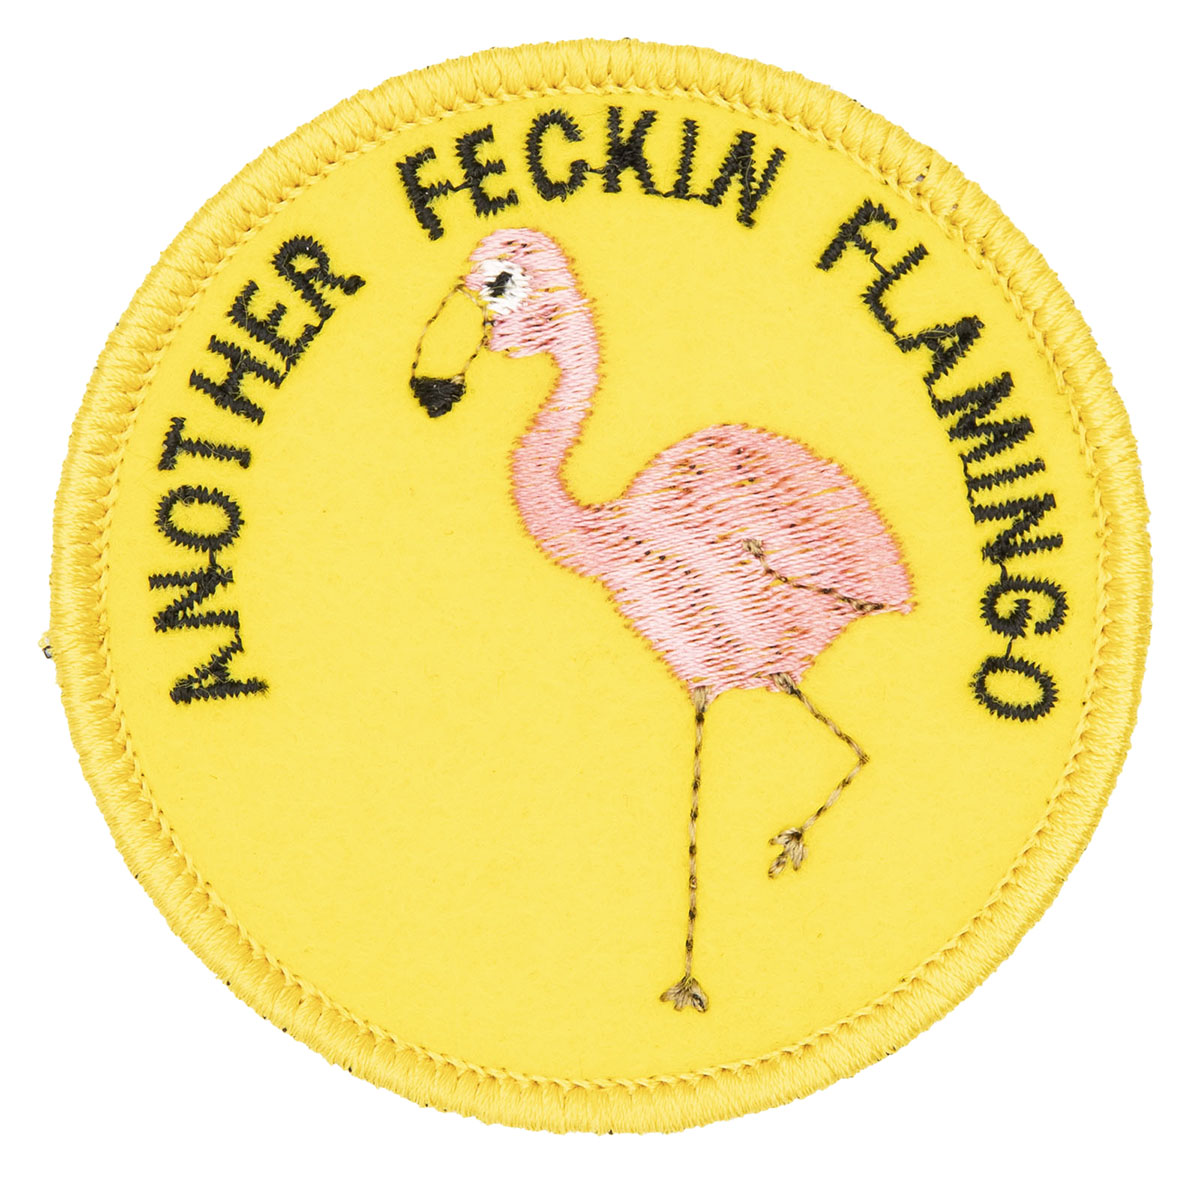 round yellow embroidered patch with a pink flamingo and black text ANOTHER FECKIN FLAMINGO